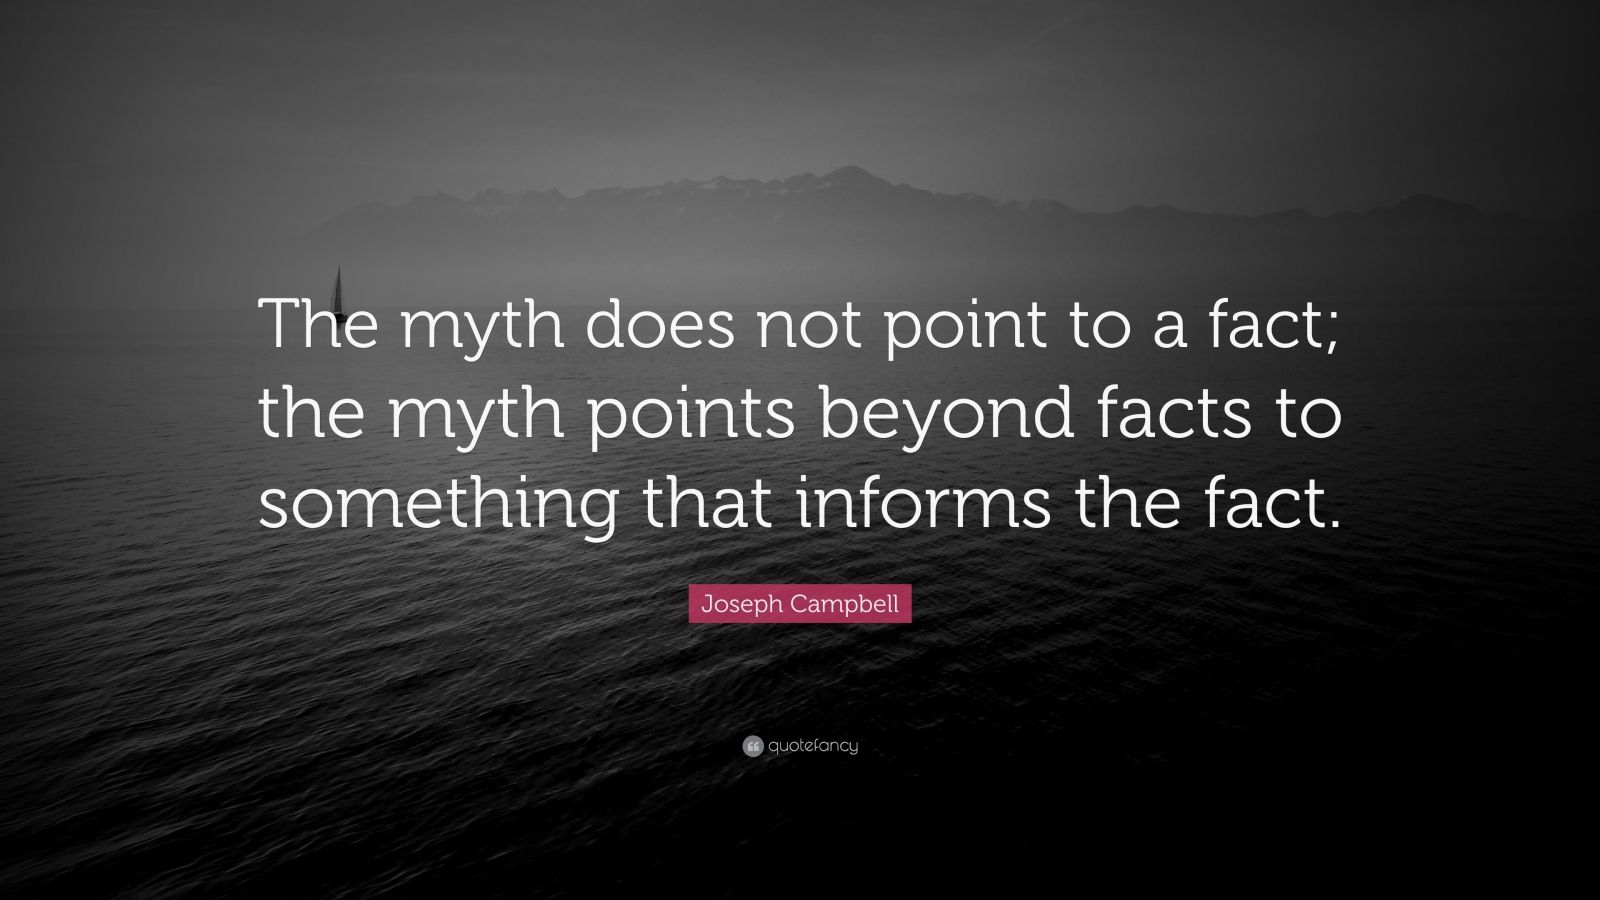 """Joseph Campbell Quote: """"The myth does not point to a fact; the myth points beyond facts to something that informs the fact."""""""